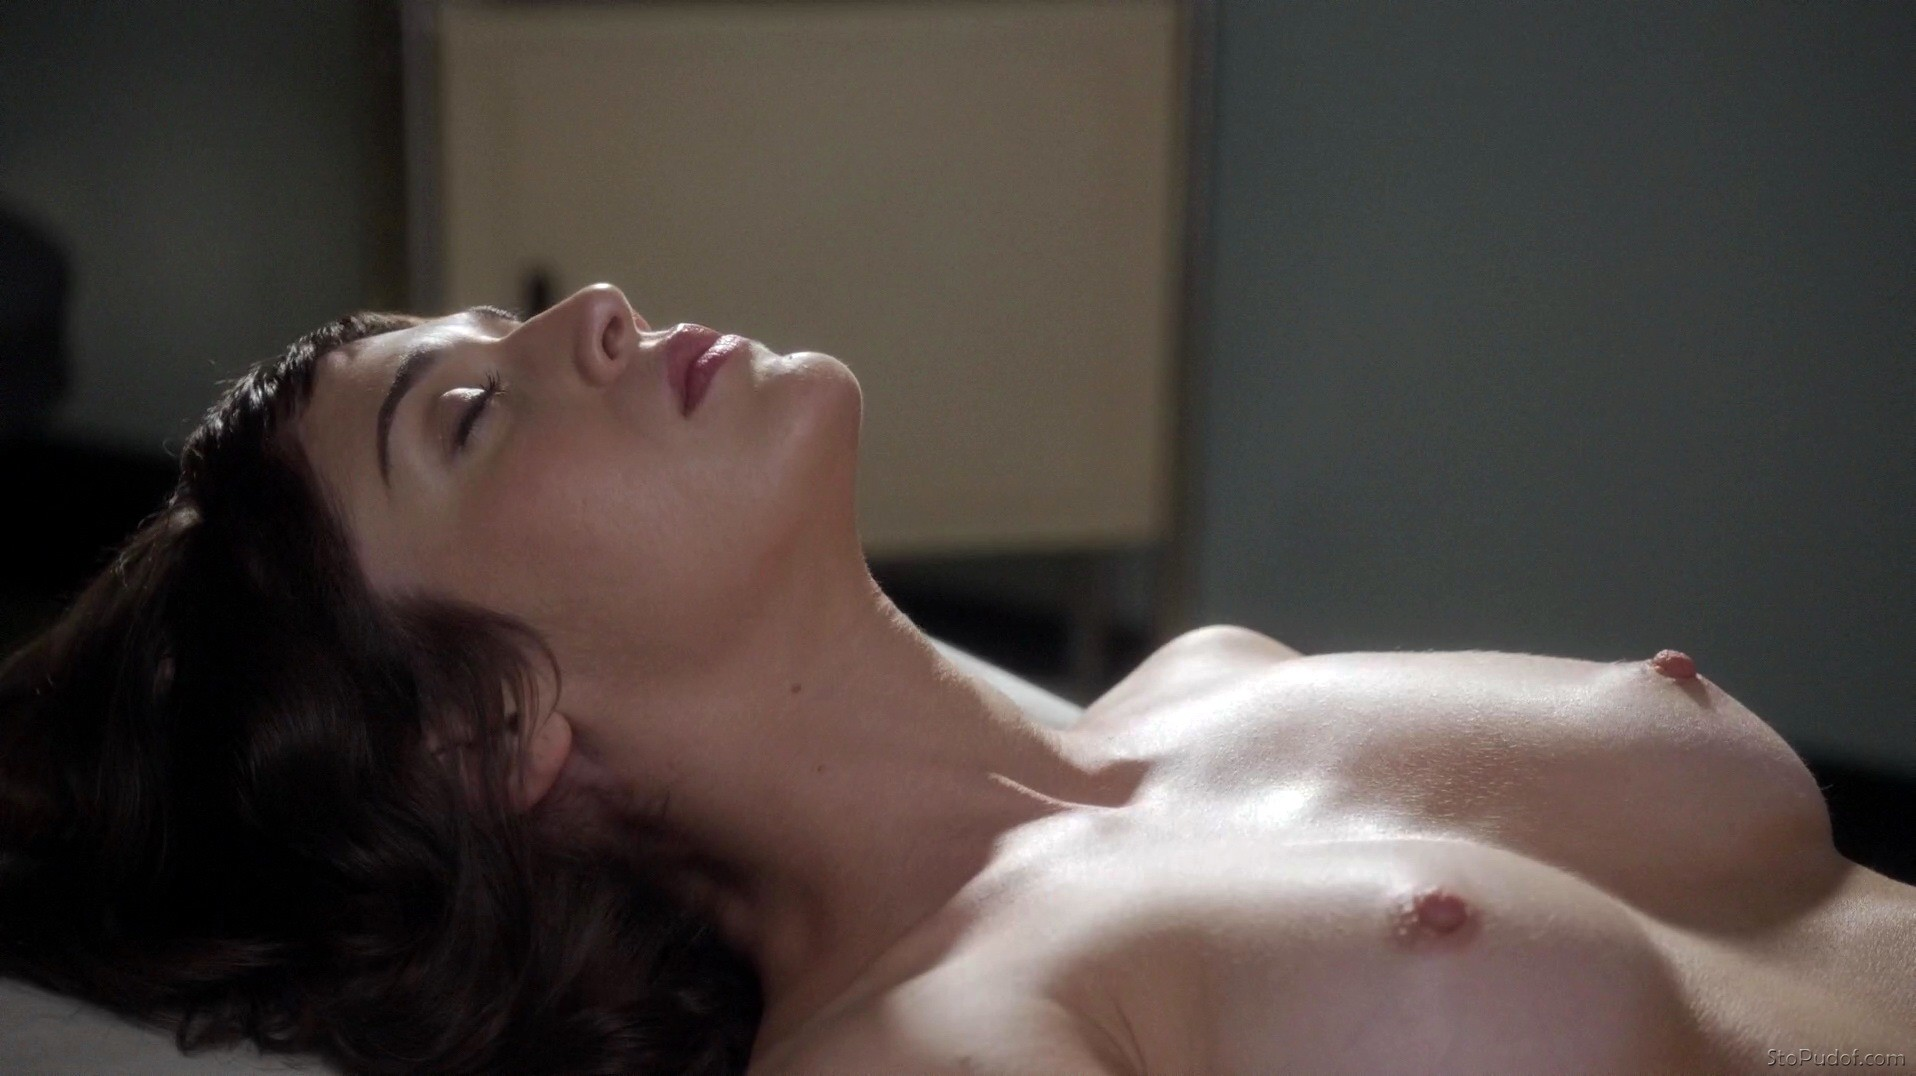 Lizzy caplan nude leaked photos